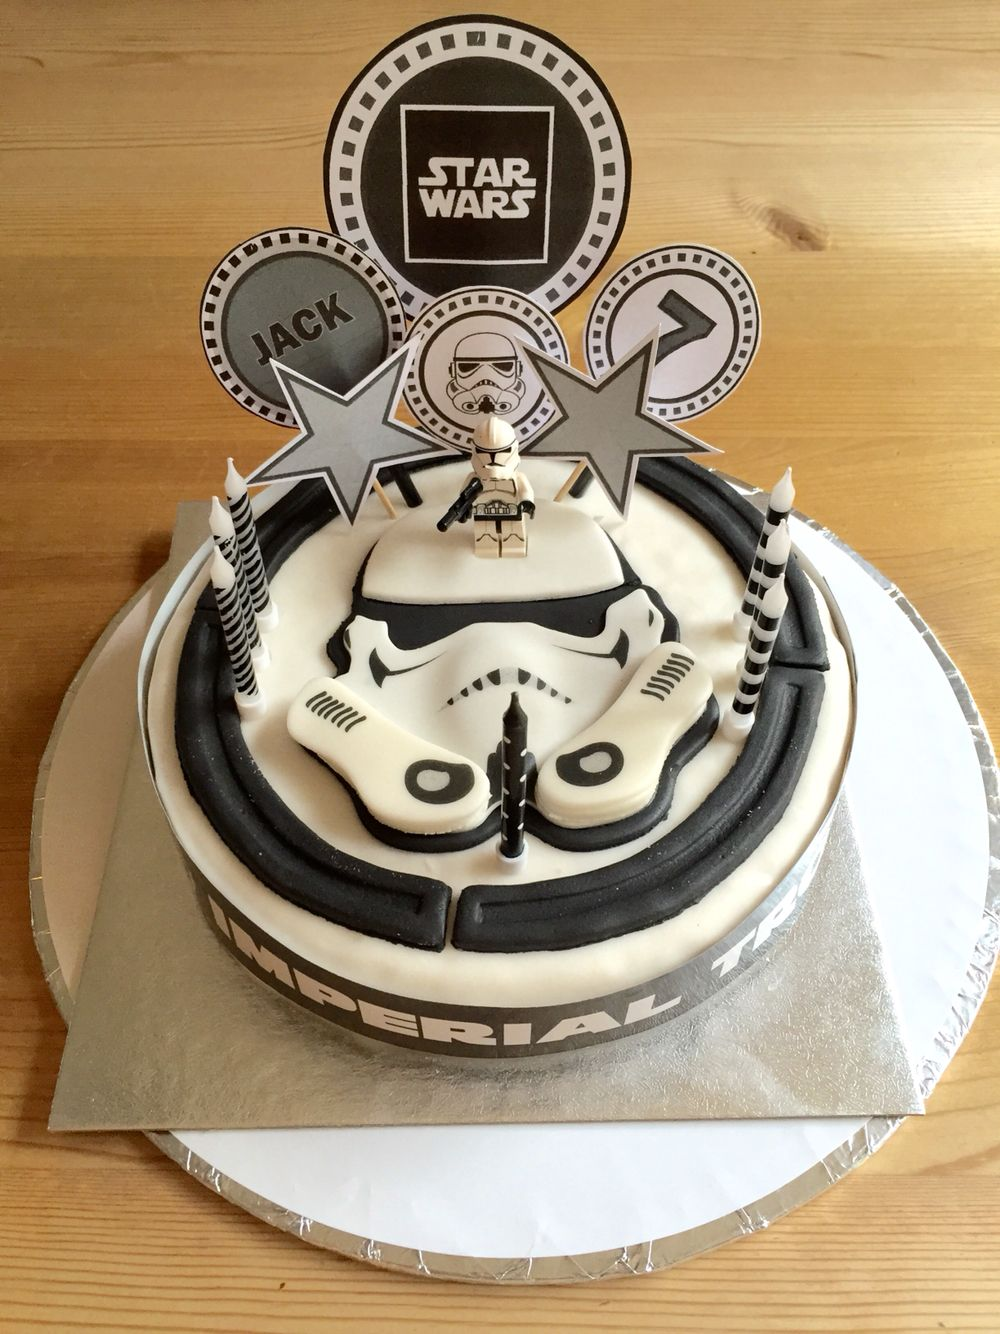 Star Wars Cake From Tesco For 10 Customised By Making Toppers On Publisher Printed Them Out And Attached To Black Straws